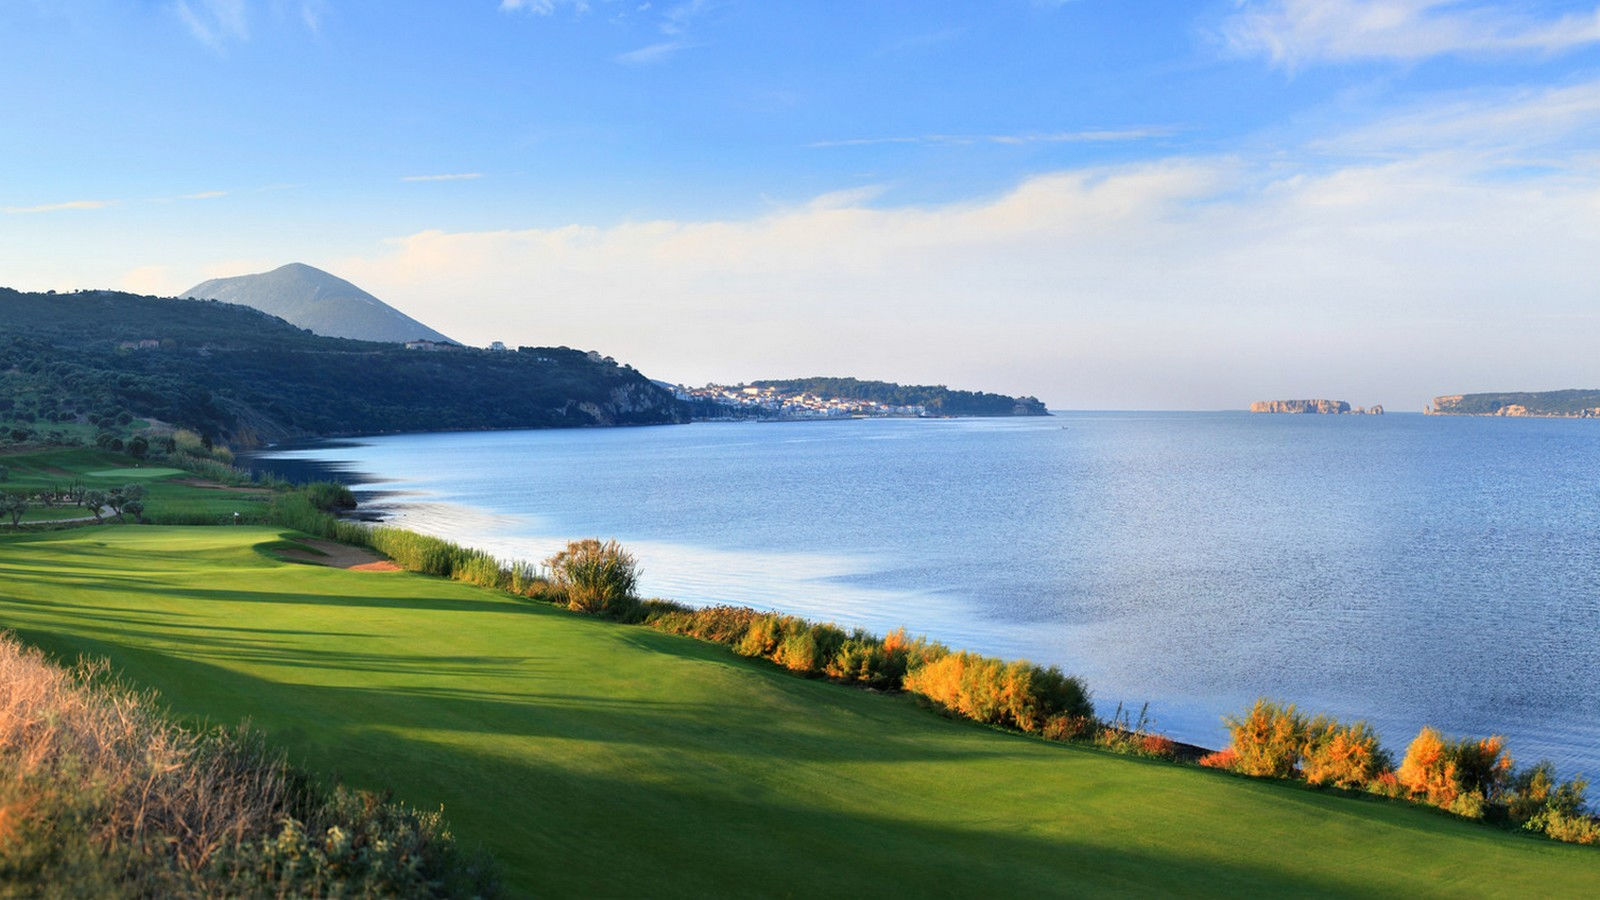 The Westin Resort Costa Navarino Messinia Greece Activities Golf The Bay Course Sea View